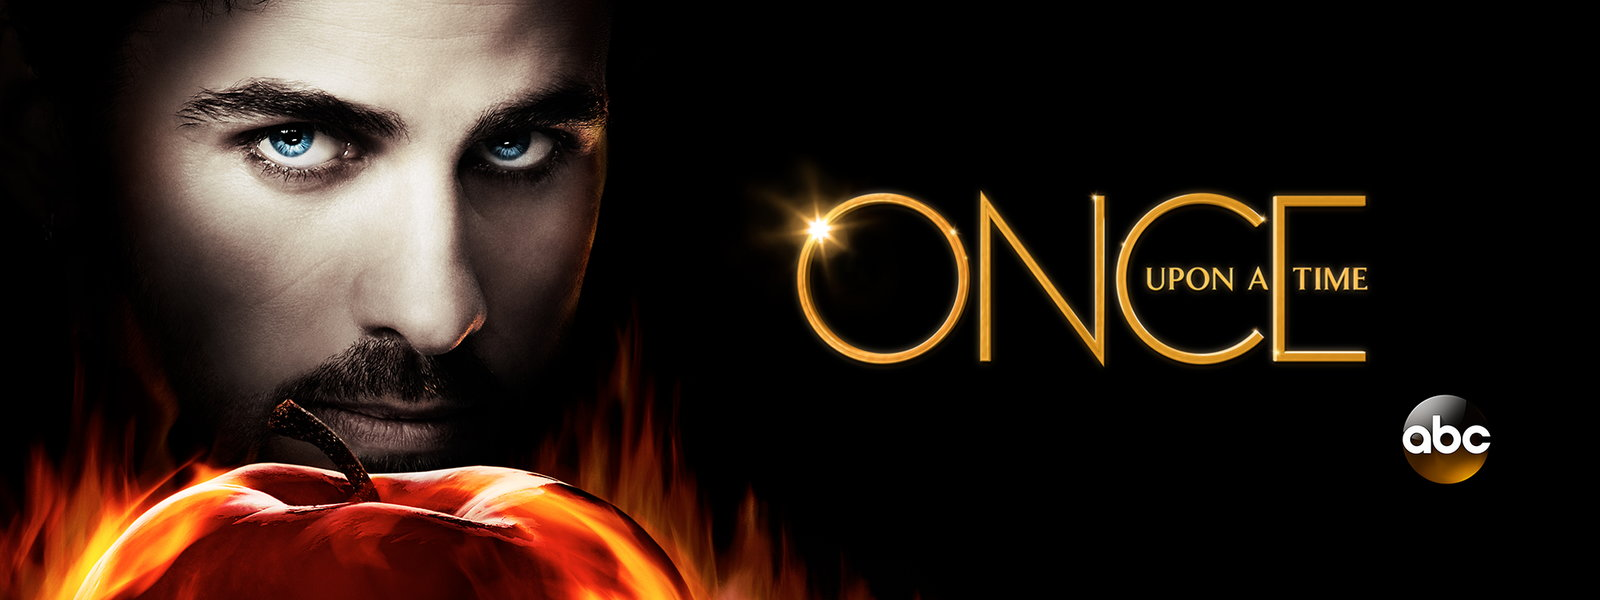 "Once Upon a Time - From Our Decay to Last Rite - Review: ""The end is near"""